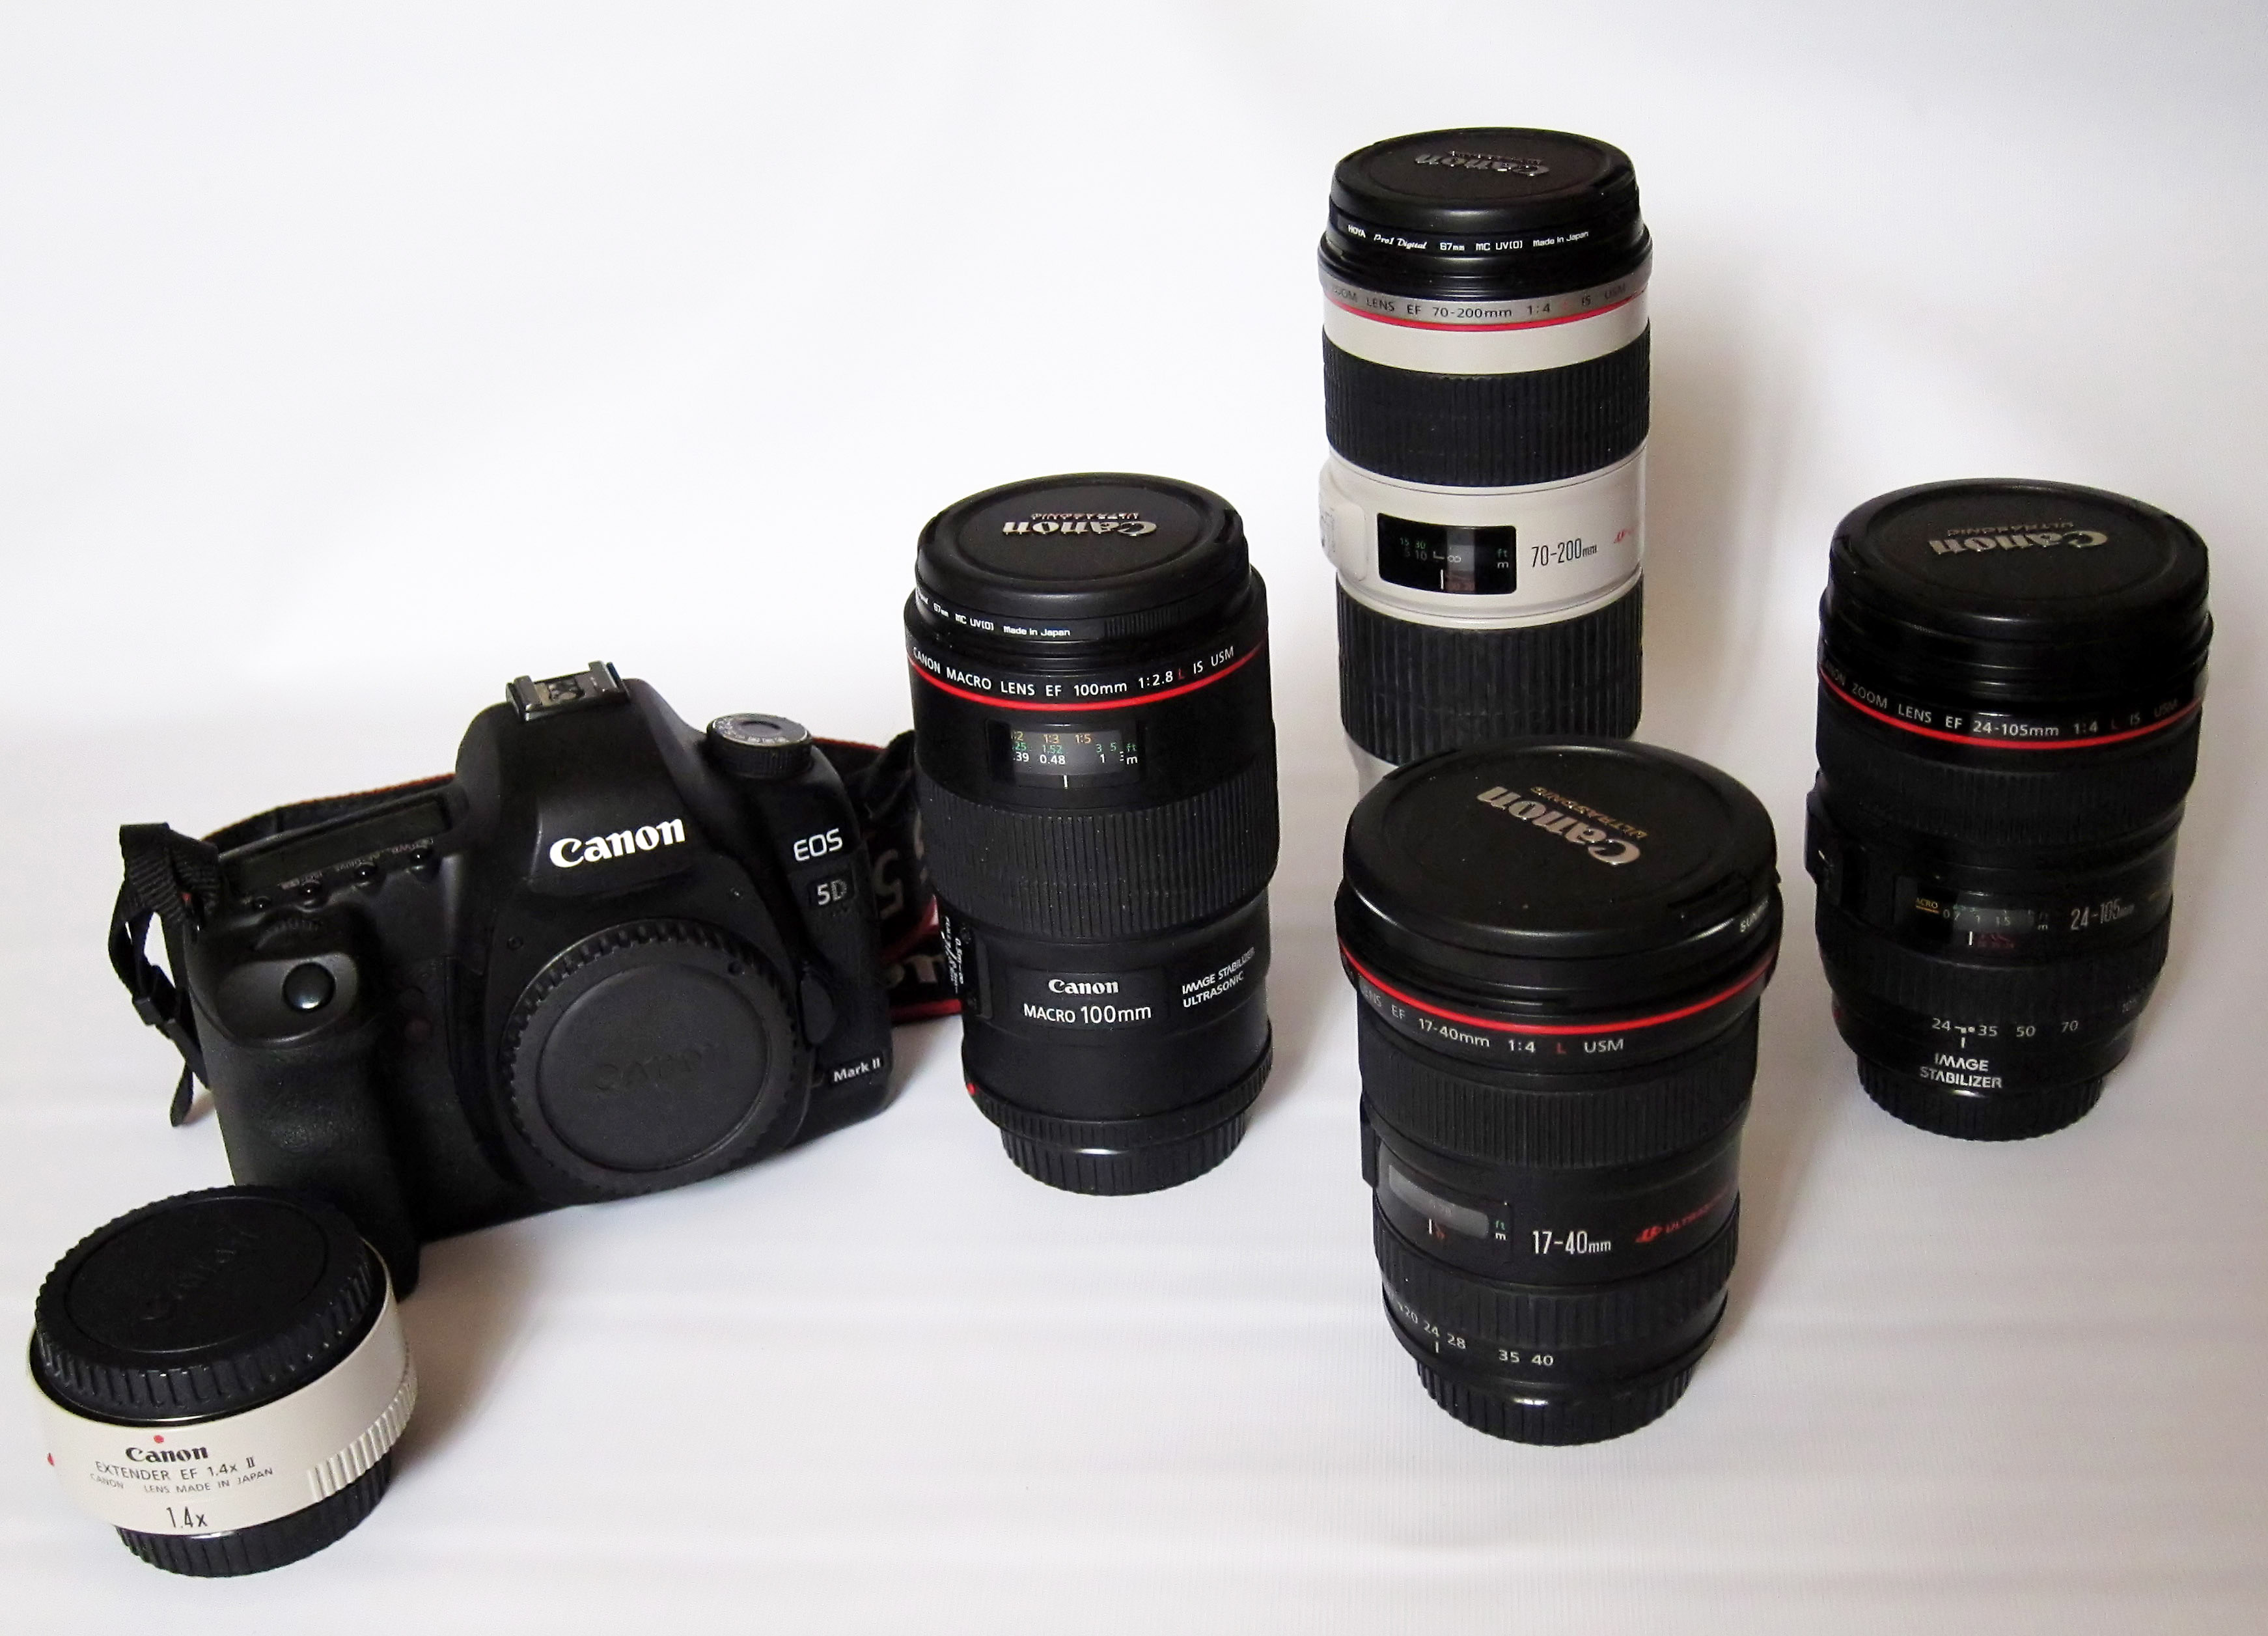 FileCanon EOS 5D Mark II And Some Canon Lenses